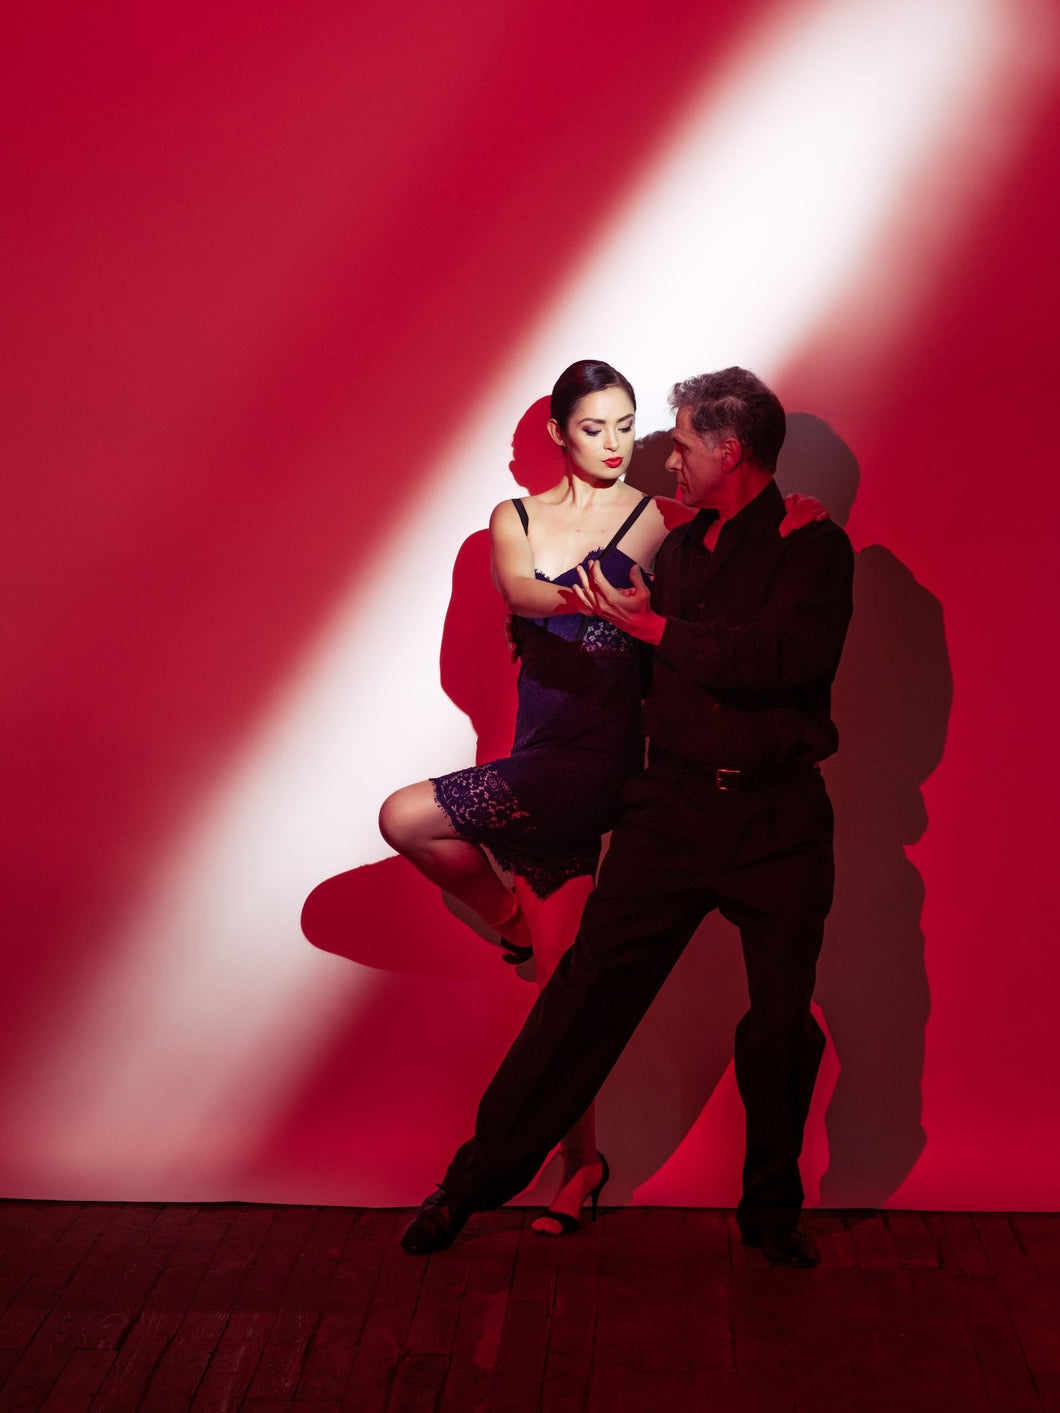 Red Argentine Tango poster - Girl in the Spotlight Sacada